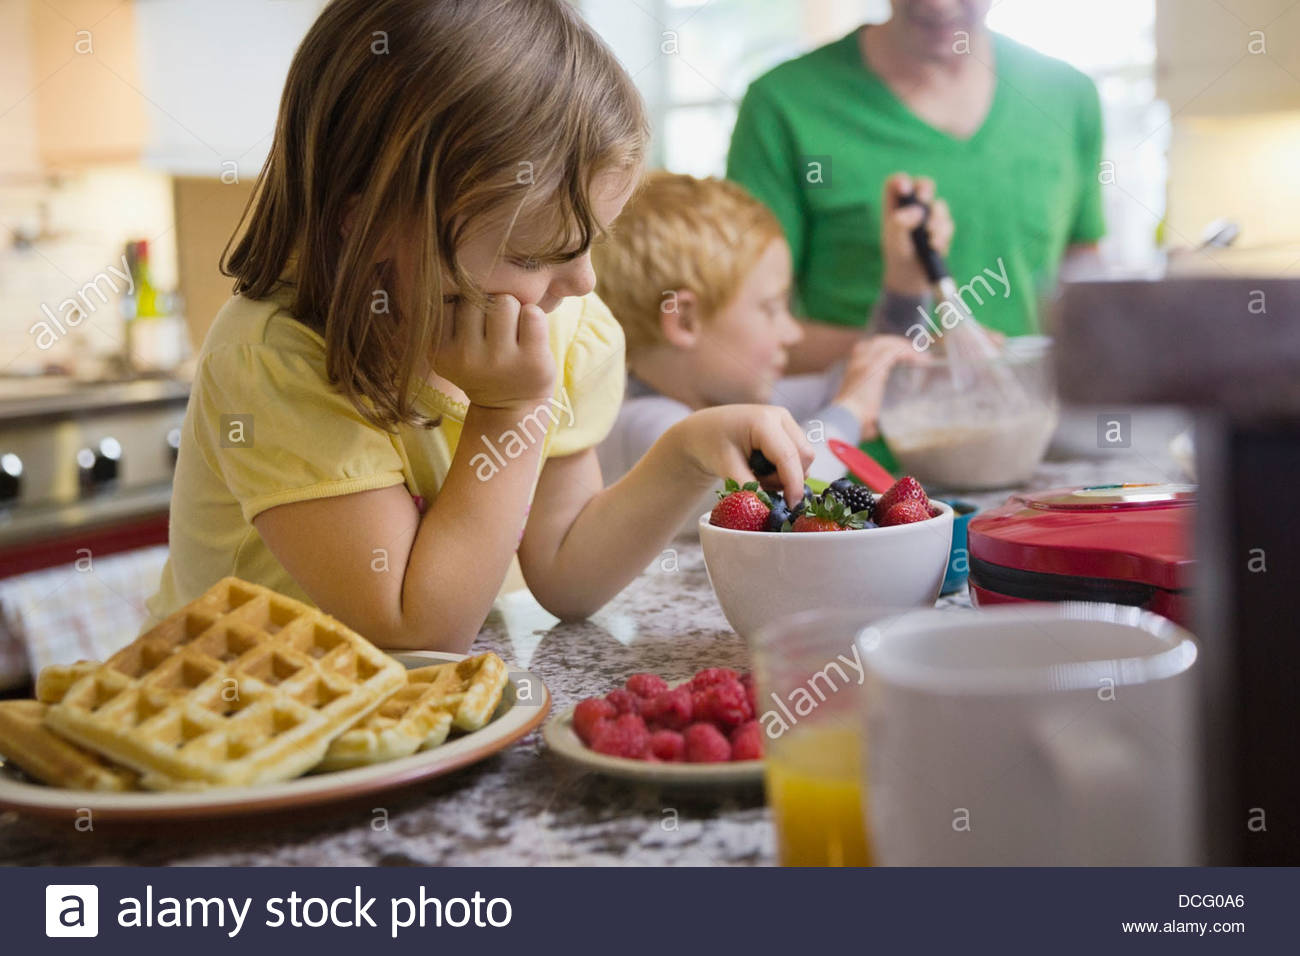 Little girl picking out berries for breakfast - Stock Image